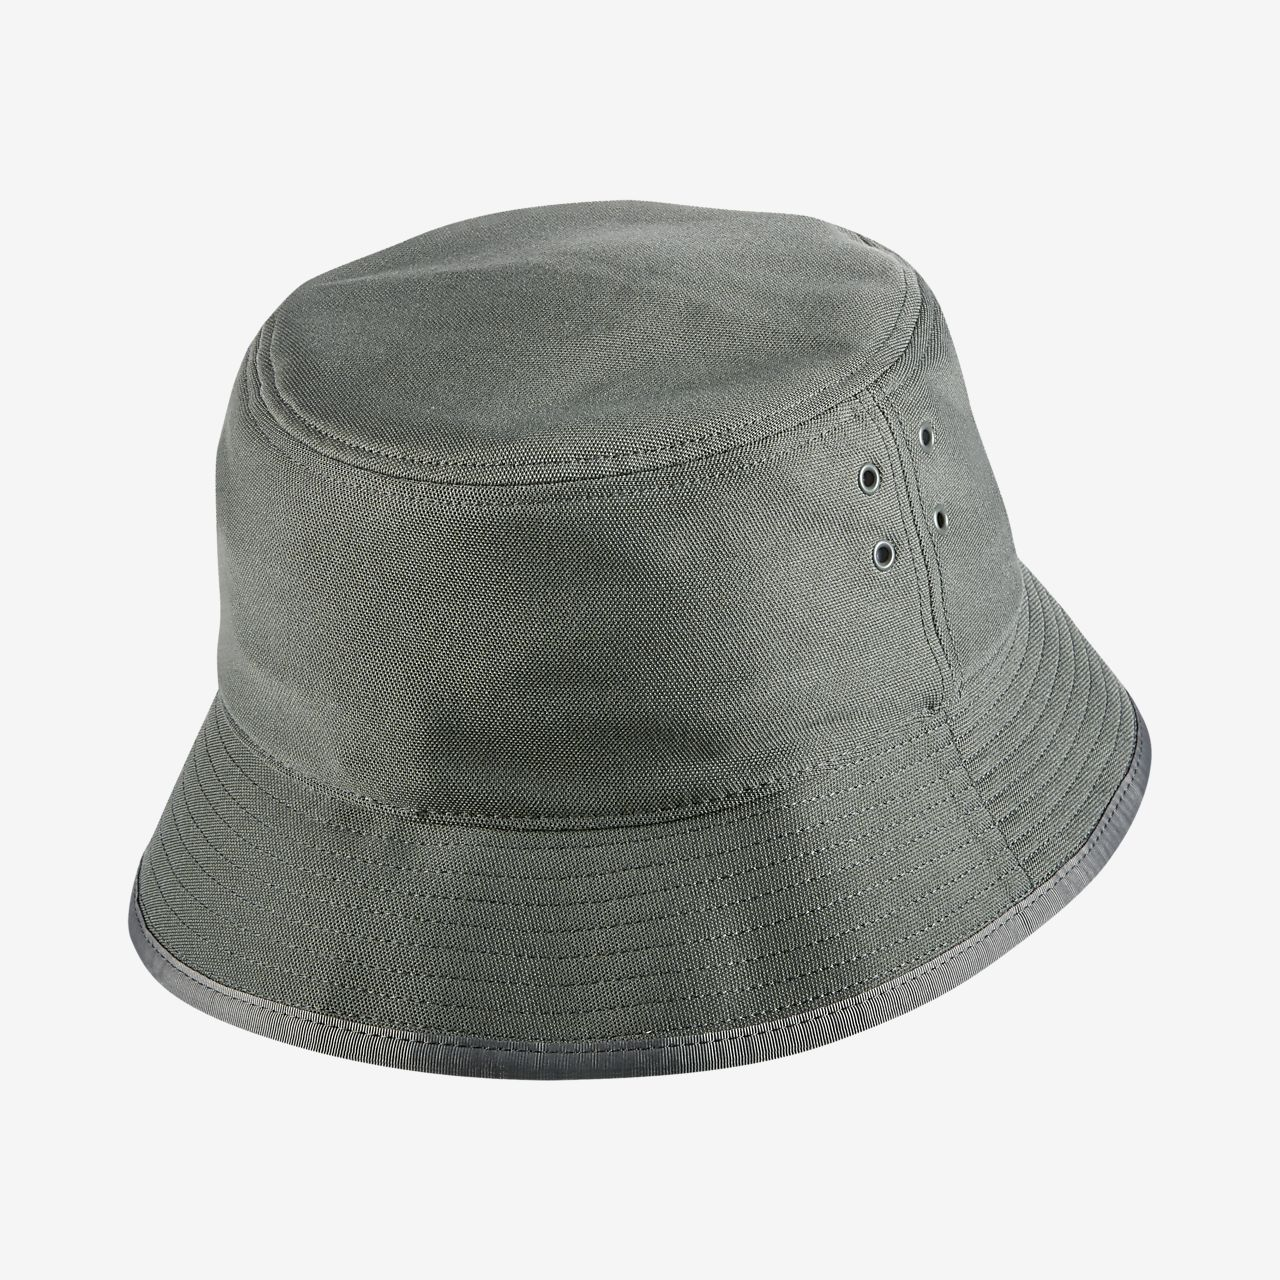 49c08aecd2c05 ... real low resolution jordan bucket hat jordan bucket hat 8fbbd 08e6e